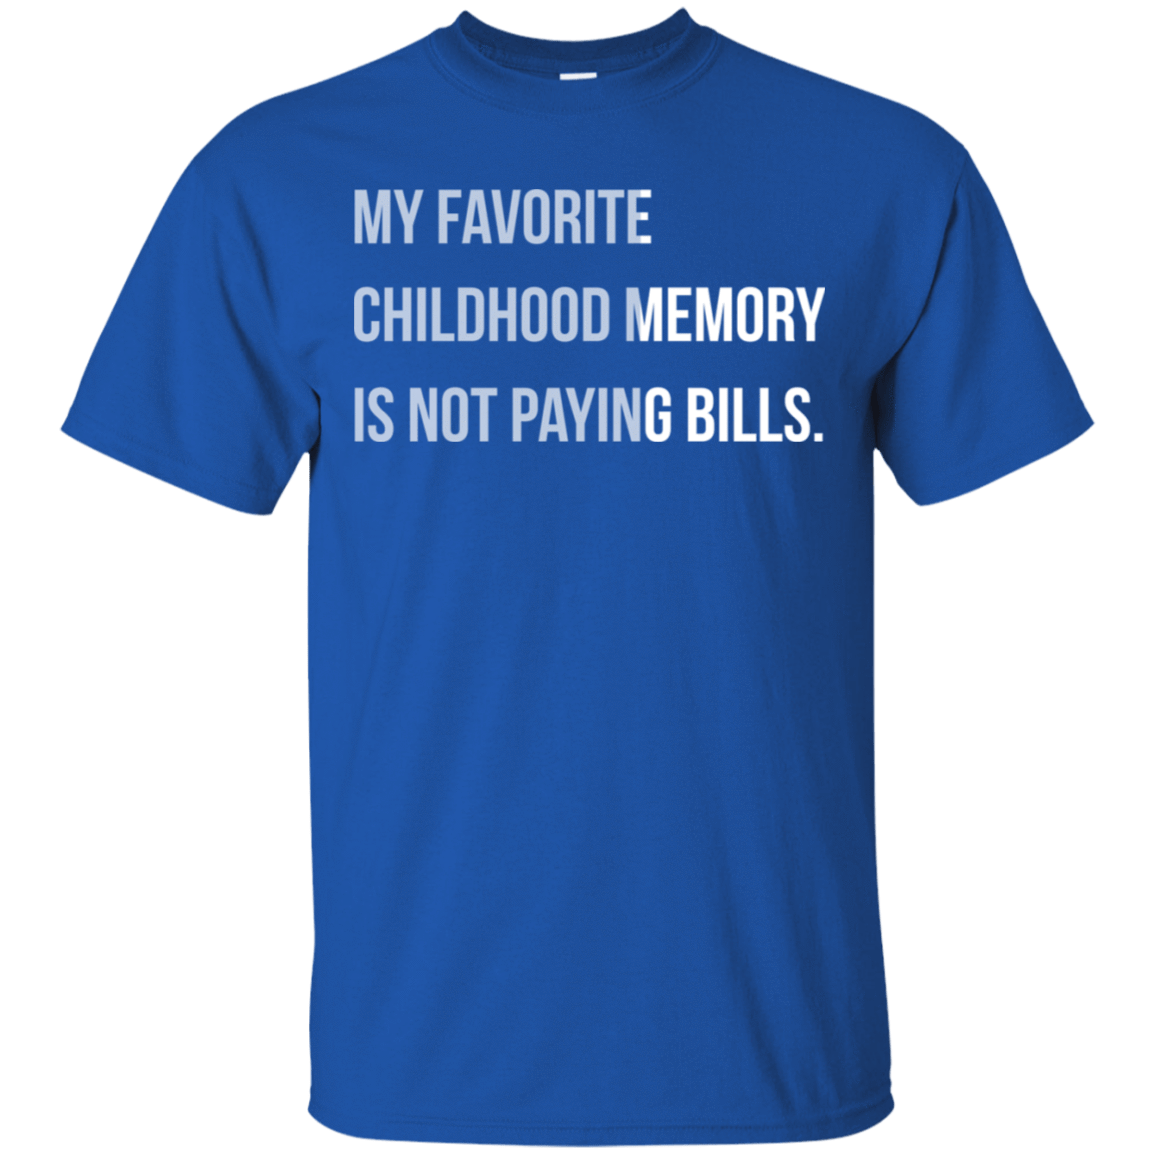 My Favorite Childhood Memory Is Not Paying Bills 22-110-73421363-249 - Tee Ript